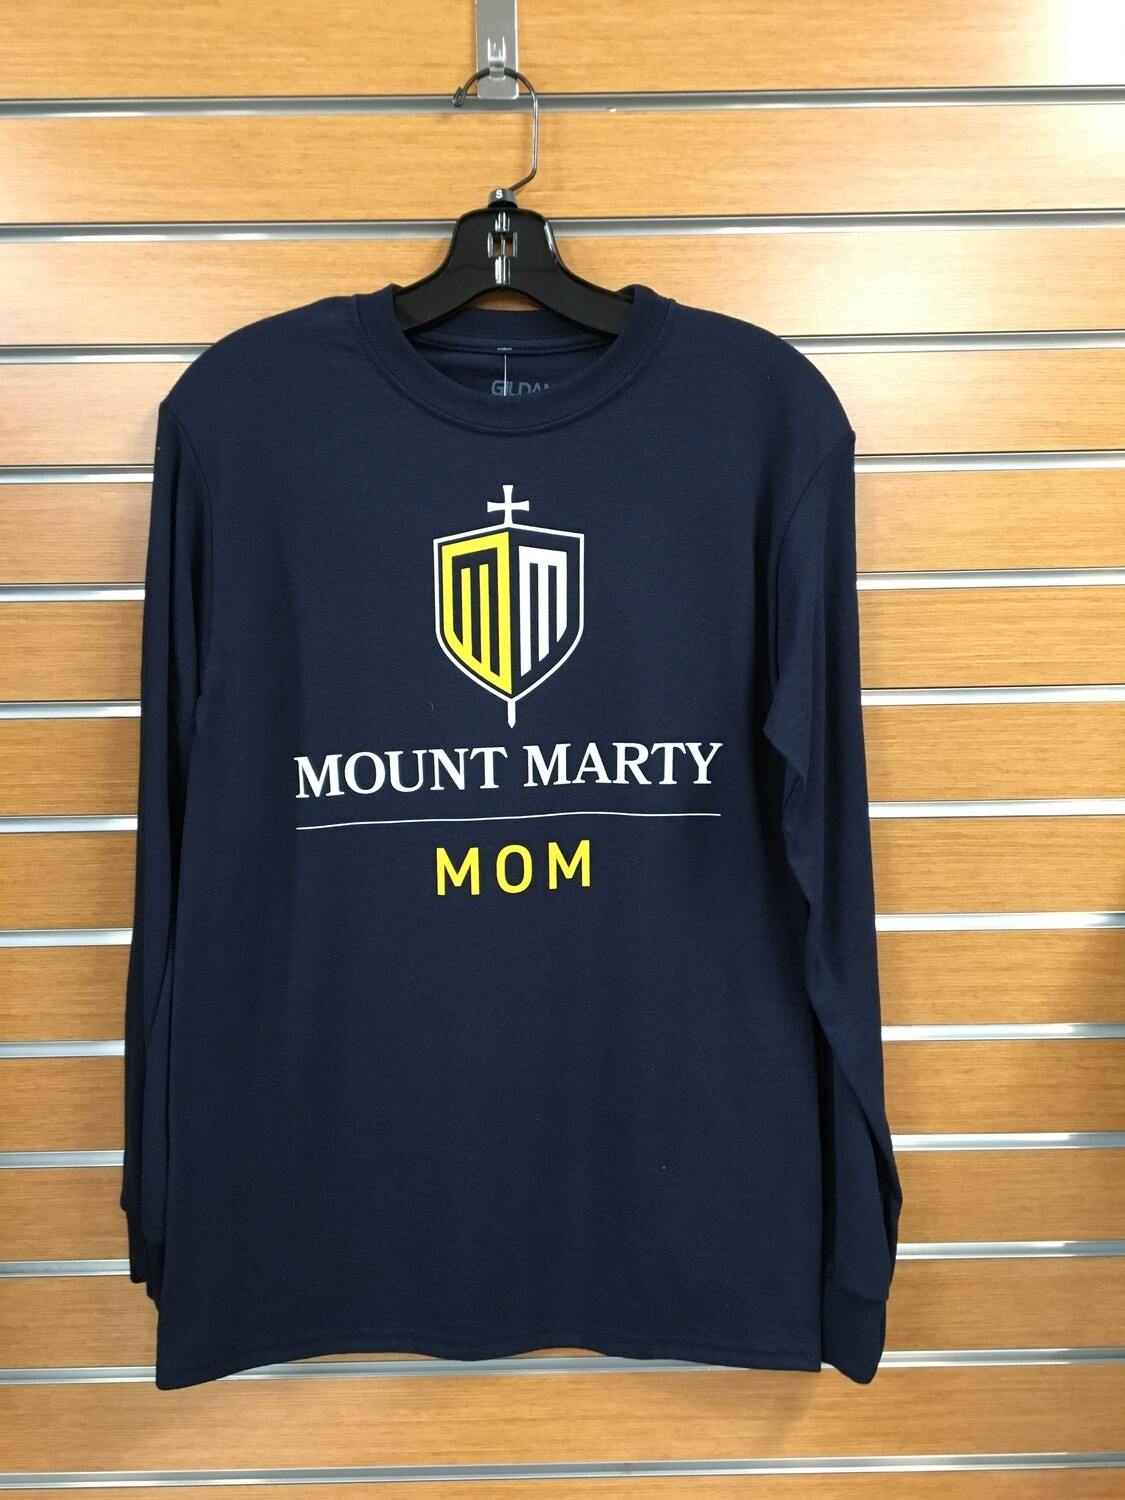 Mount Marty Mom LS T shirt